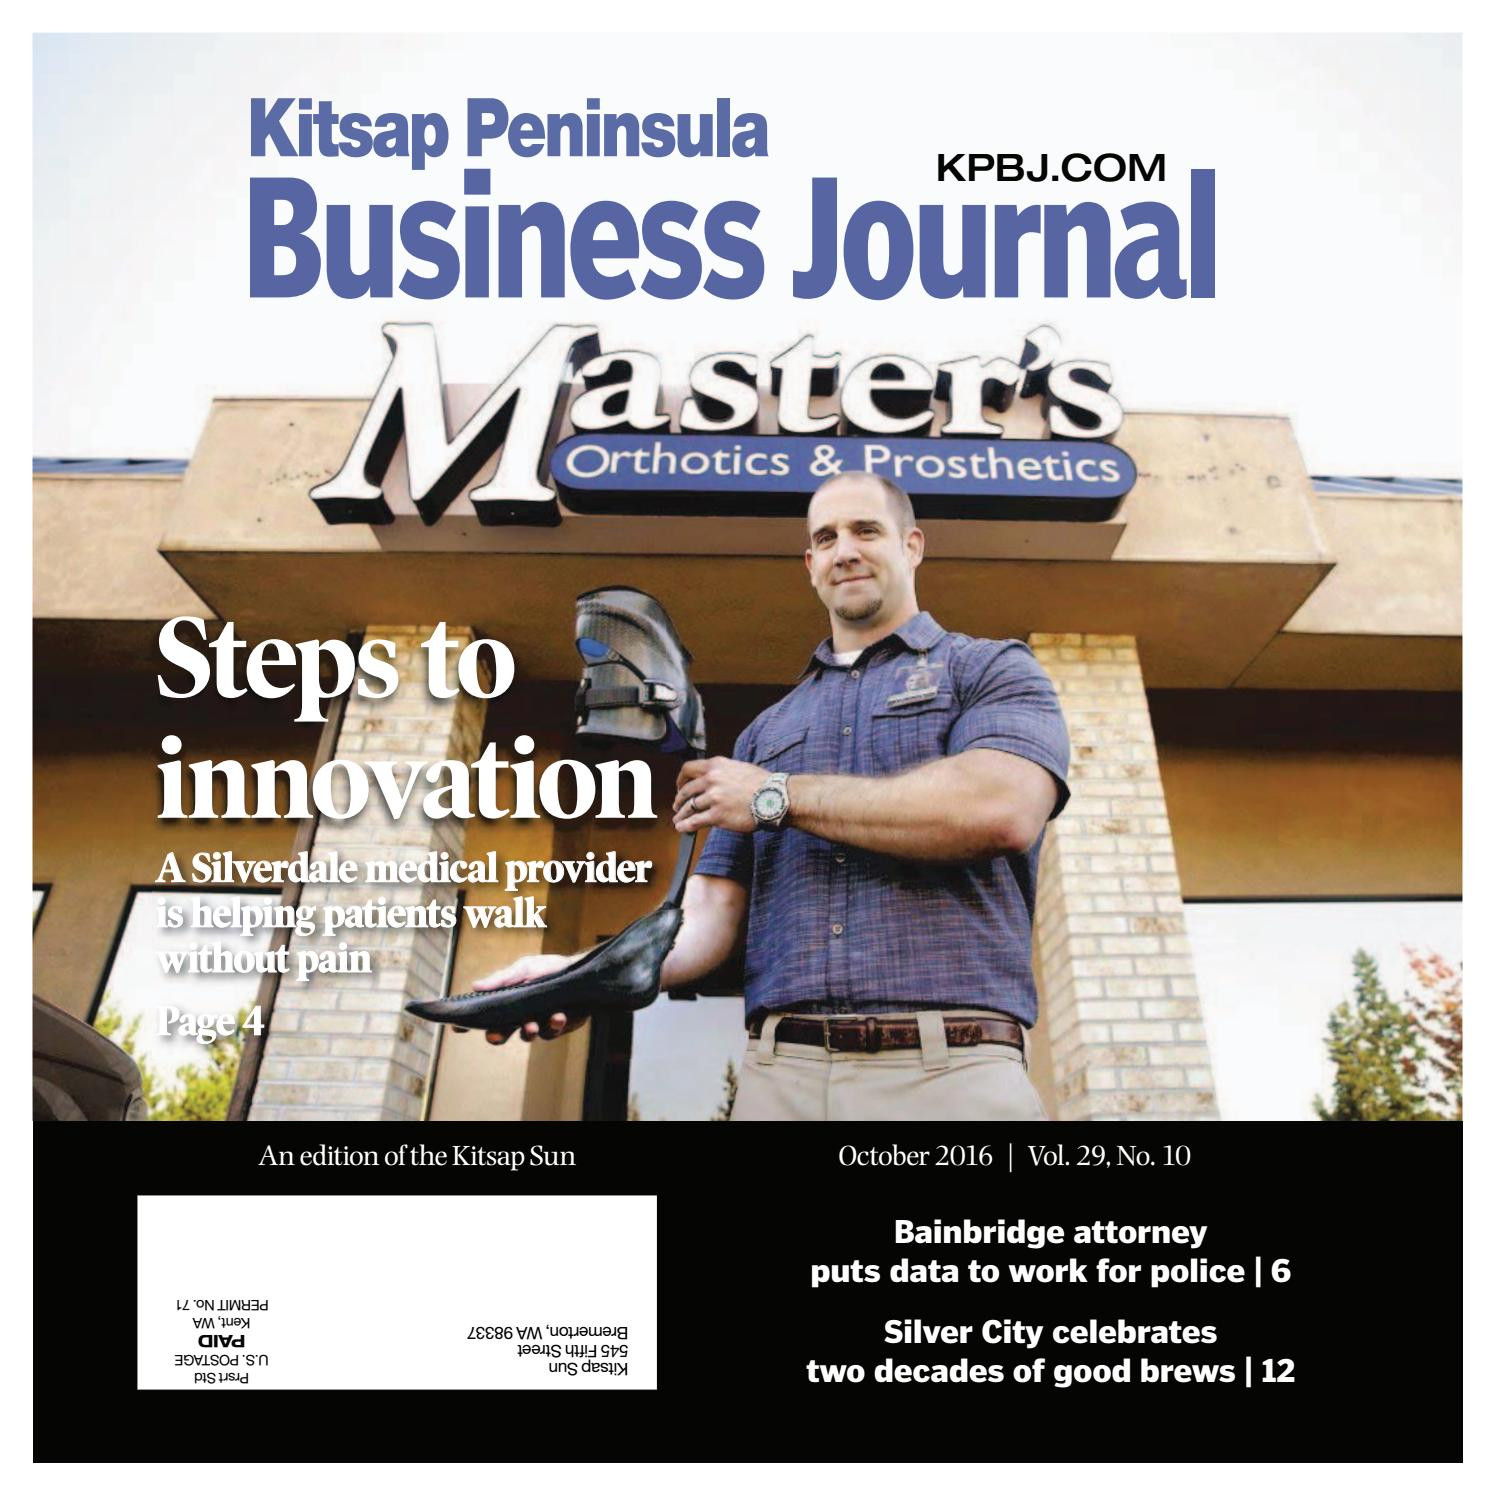 Kitsap Peninsula Business Journal October 2016 by Kitsap Sun Digital issuu